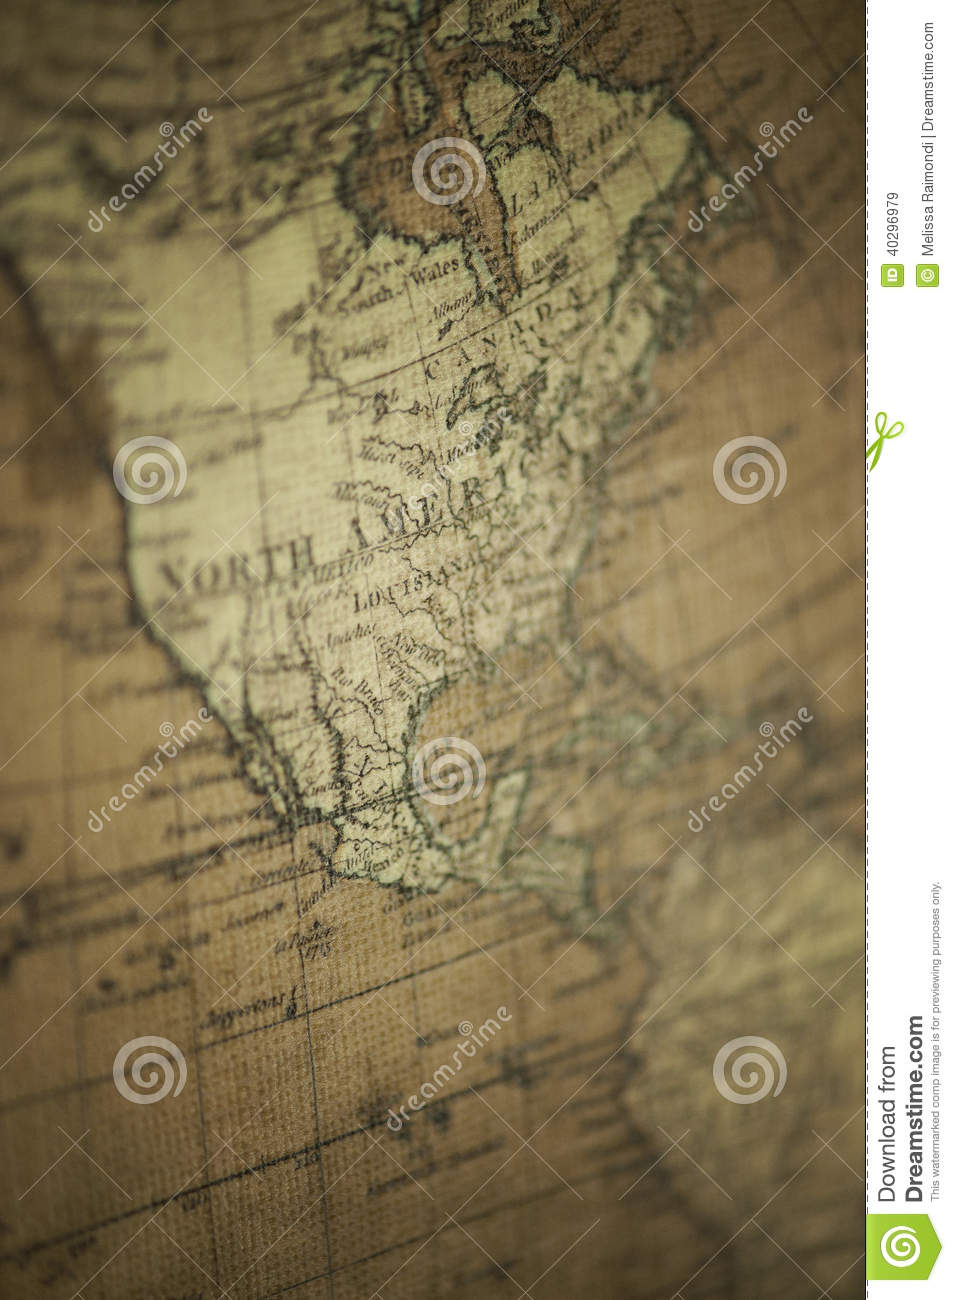 Old world map north america stock image image of vintage north old world map north america royalty free stock photo gumiabroncs Image collections